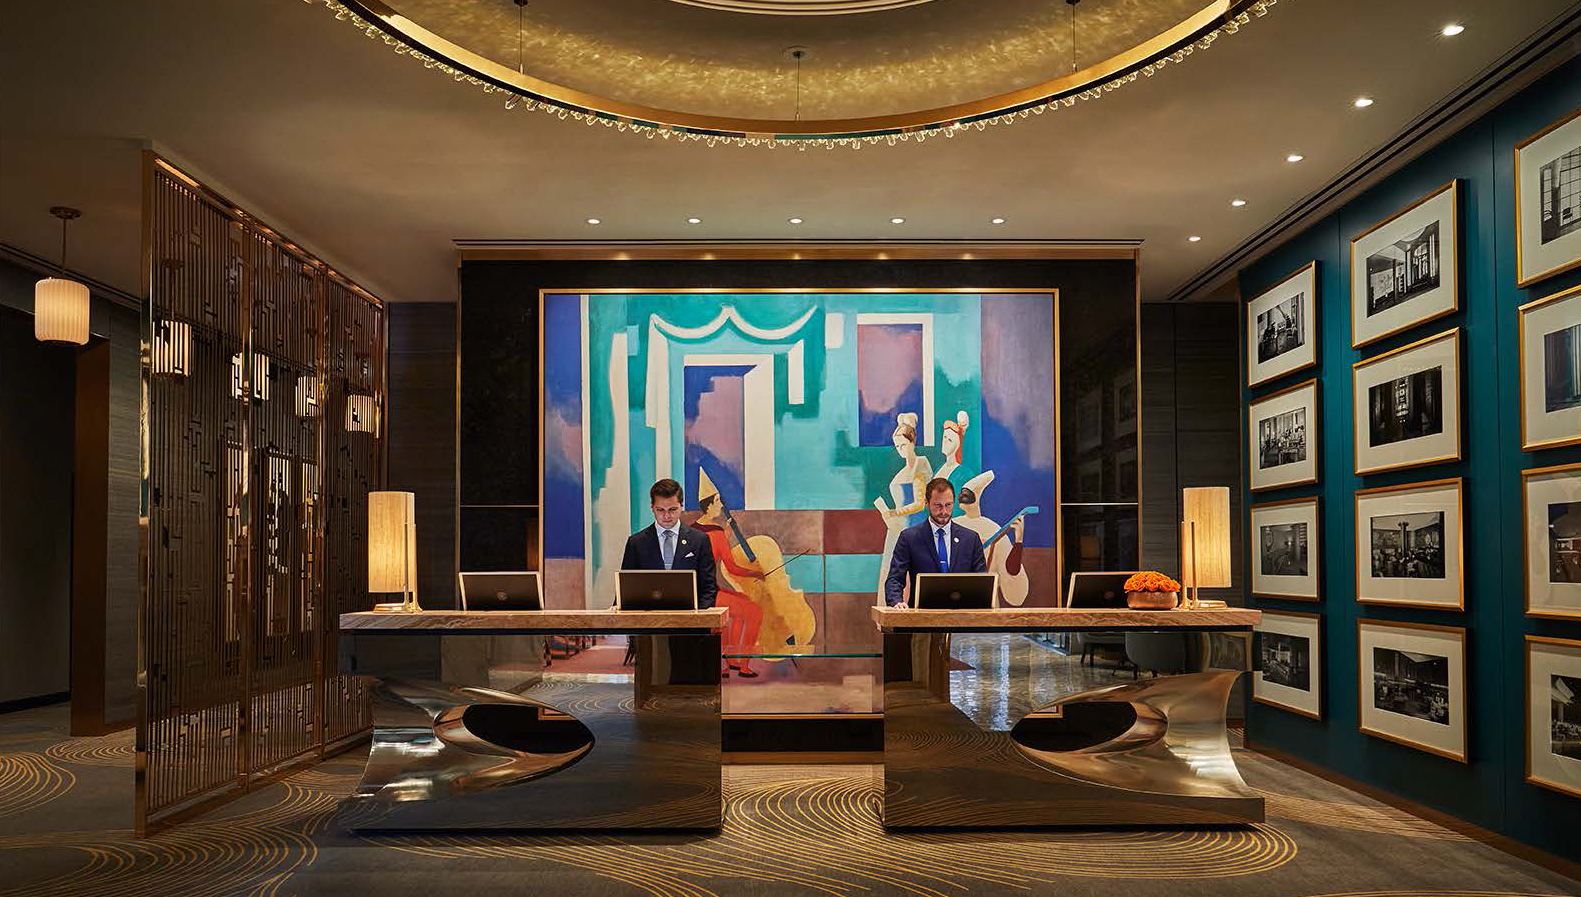 Large bronze reception desks are positioned in front of a large painting depicting a Venetian carnival recital.